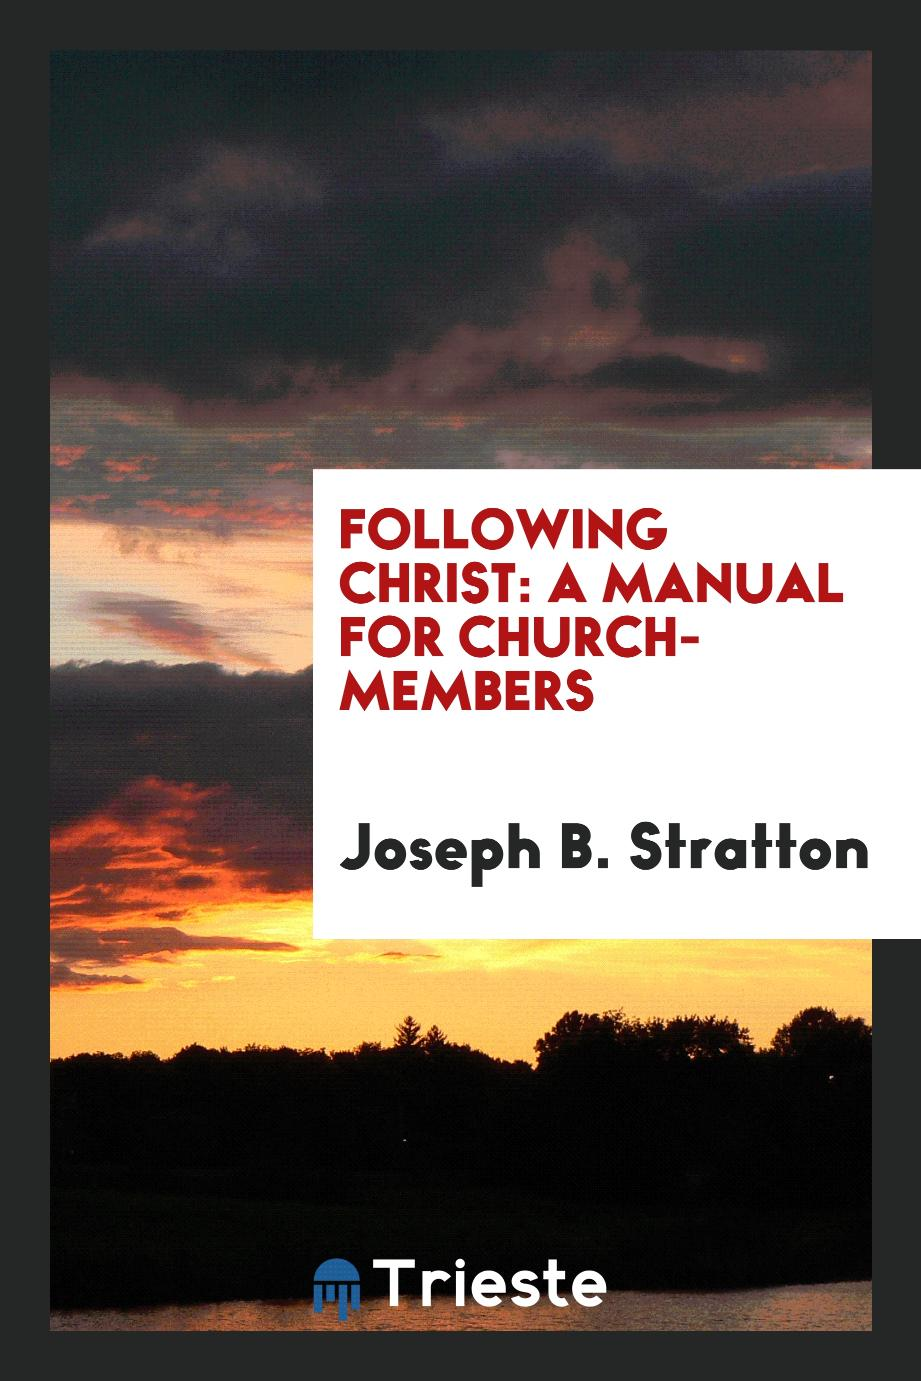 Following Christ: a manual for church-members